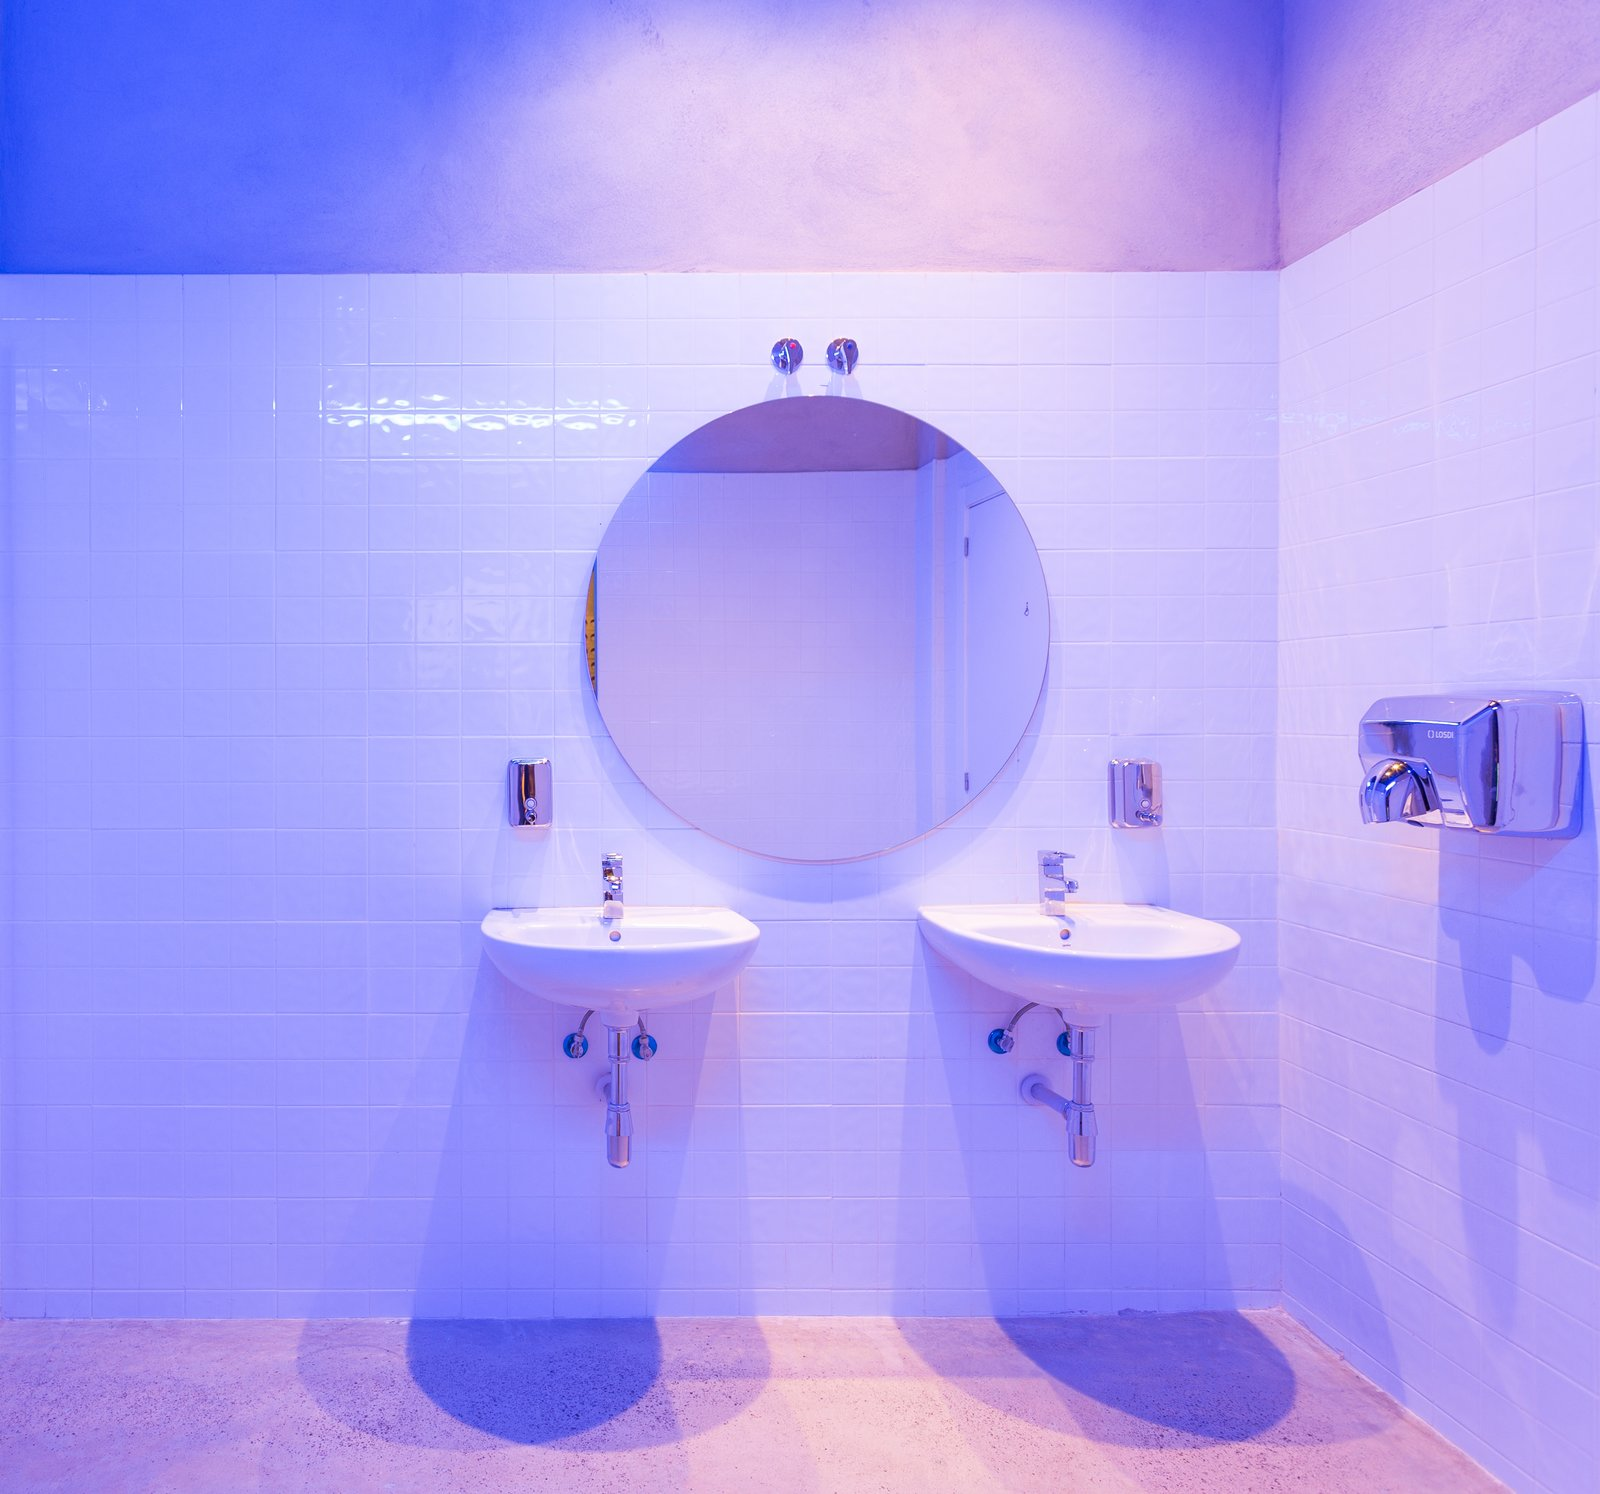 Bath Room, Concrete Floor, Recessed Lighting, Accent Lighting, Ceramic Tile Wall, Wall Mount Sink, and Ceiling Lighting The lighting in the bathroom creates suggestive blue gradients.  IMOOD Restaurant